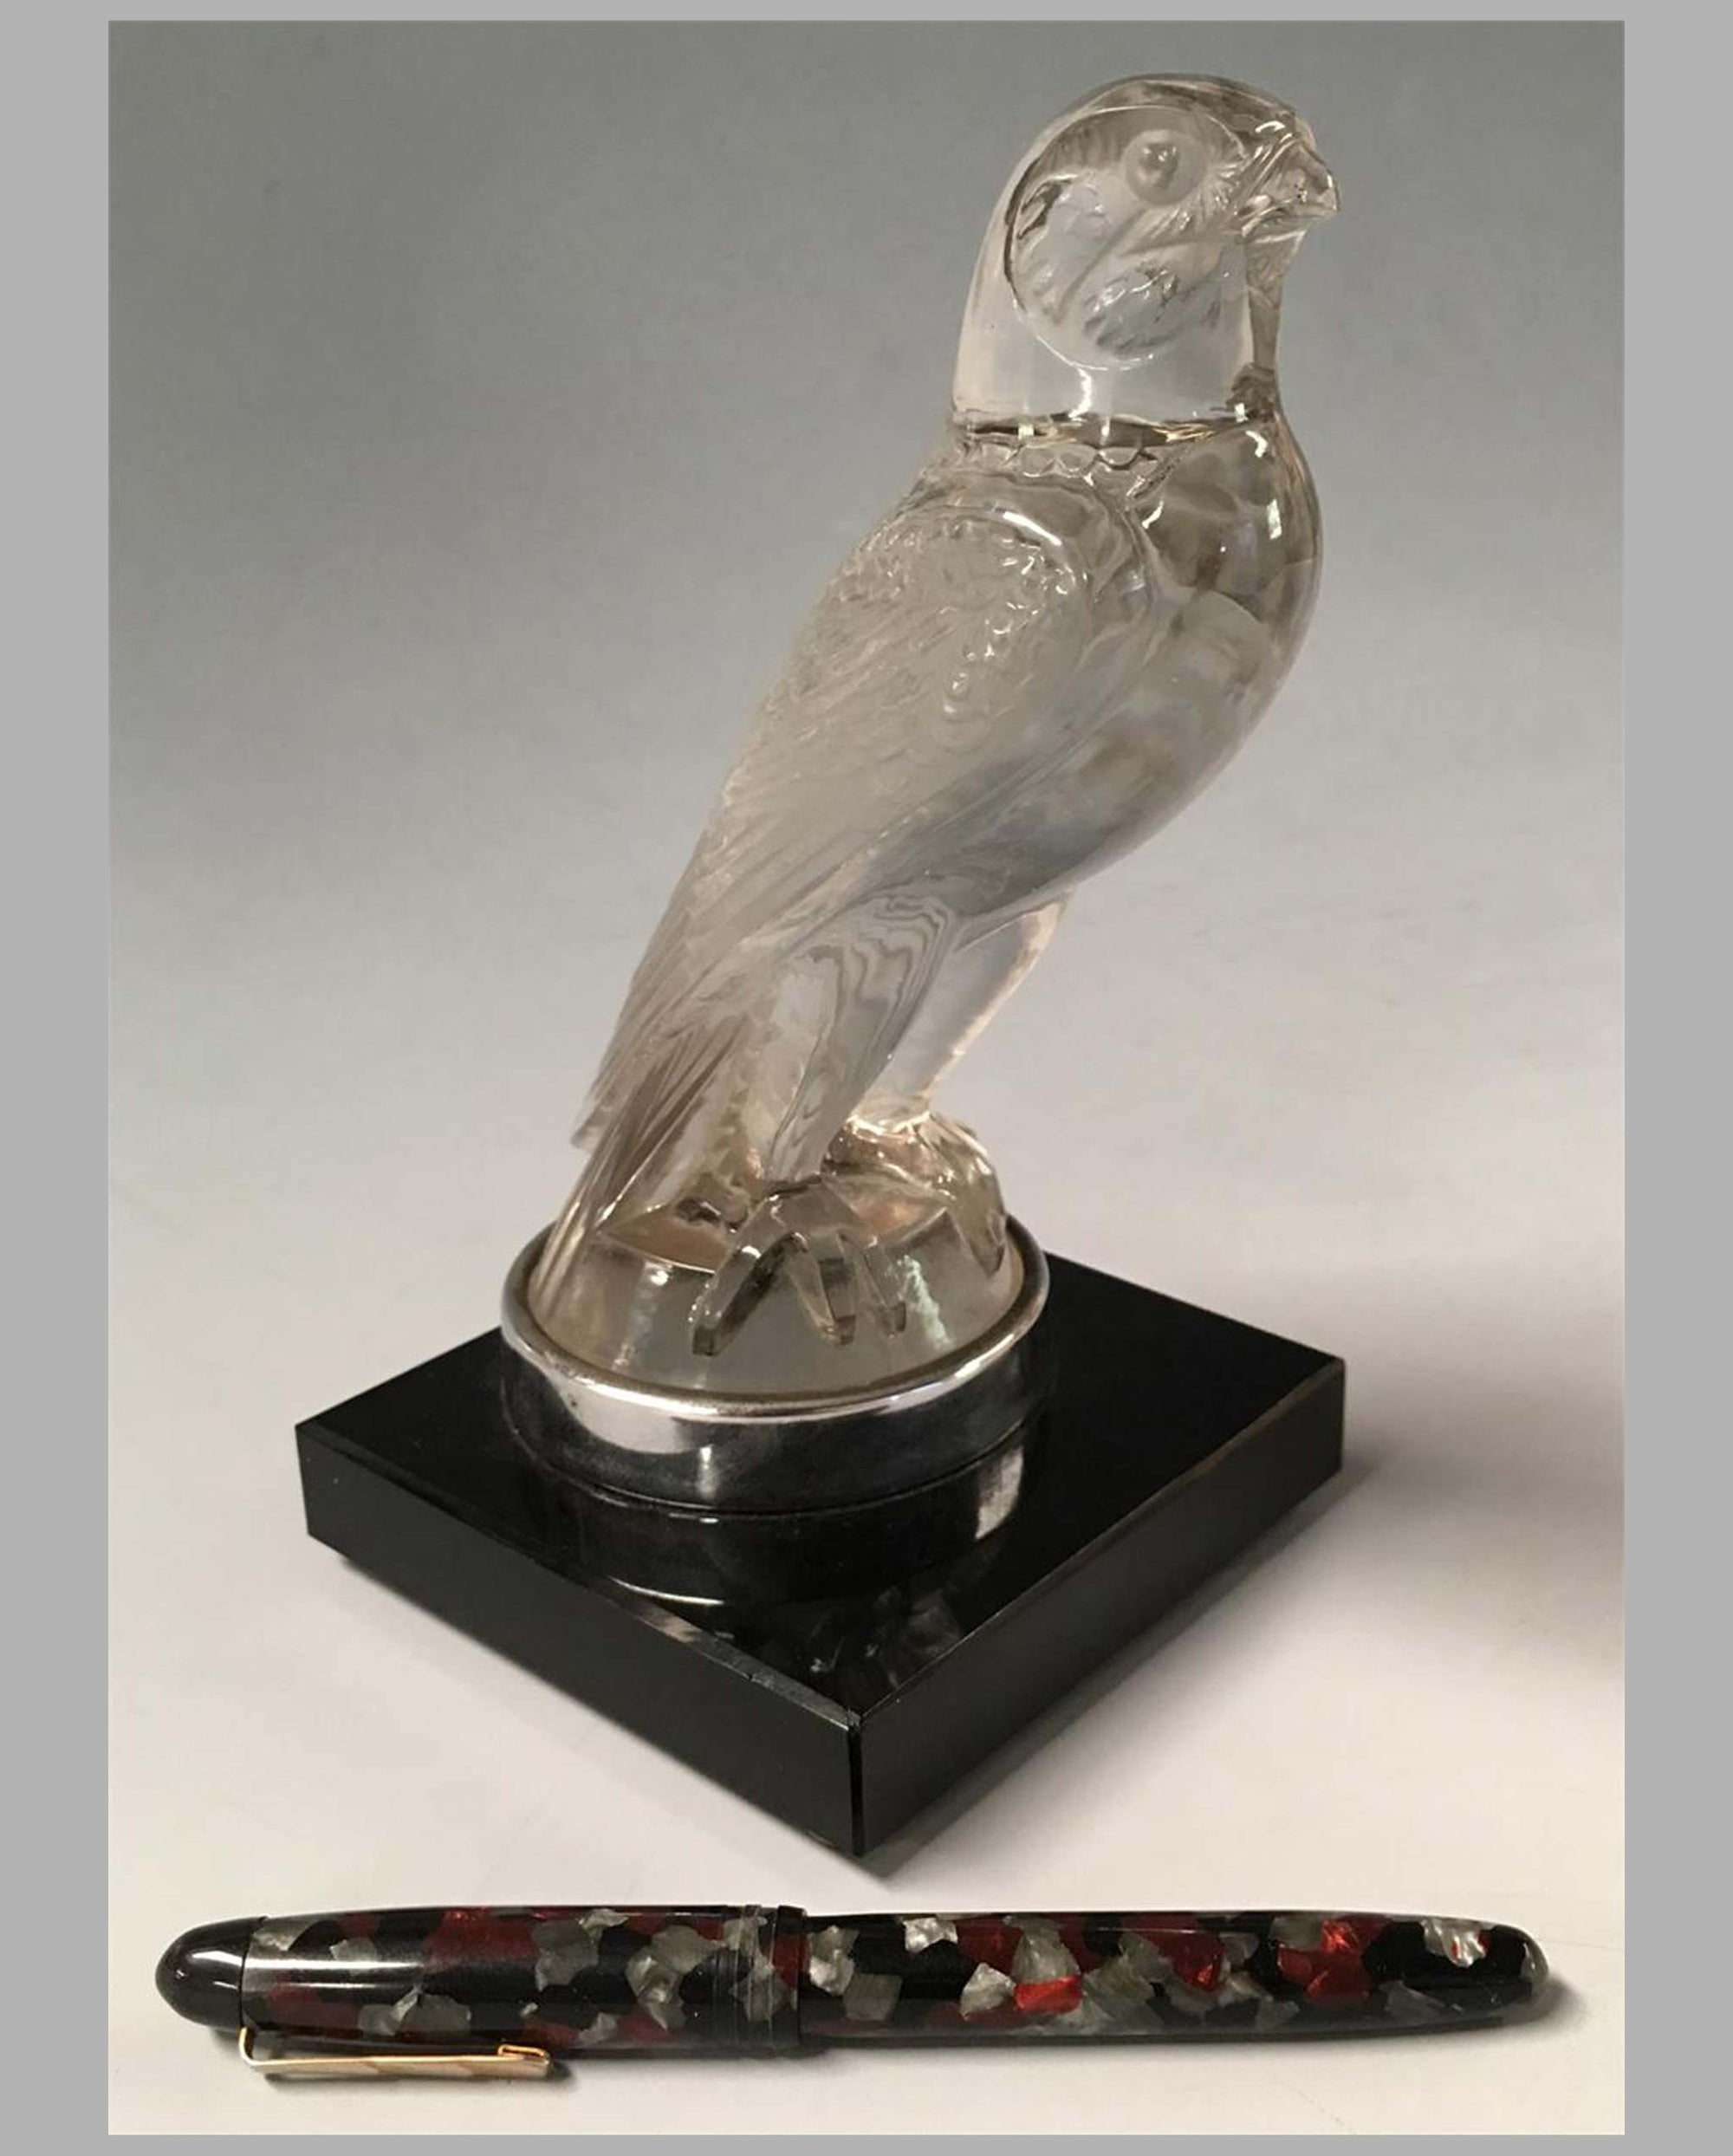 Le Faucon – Falcon mascot by René Lalique